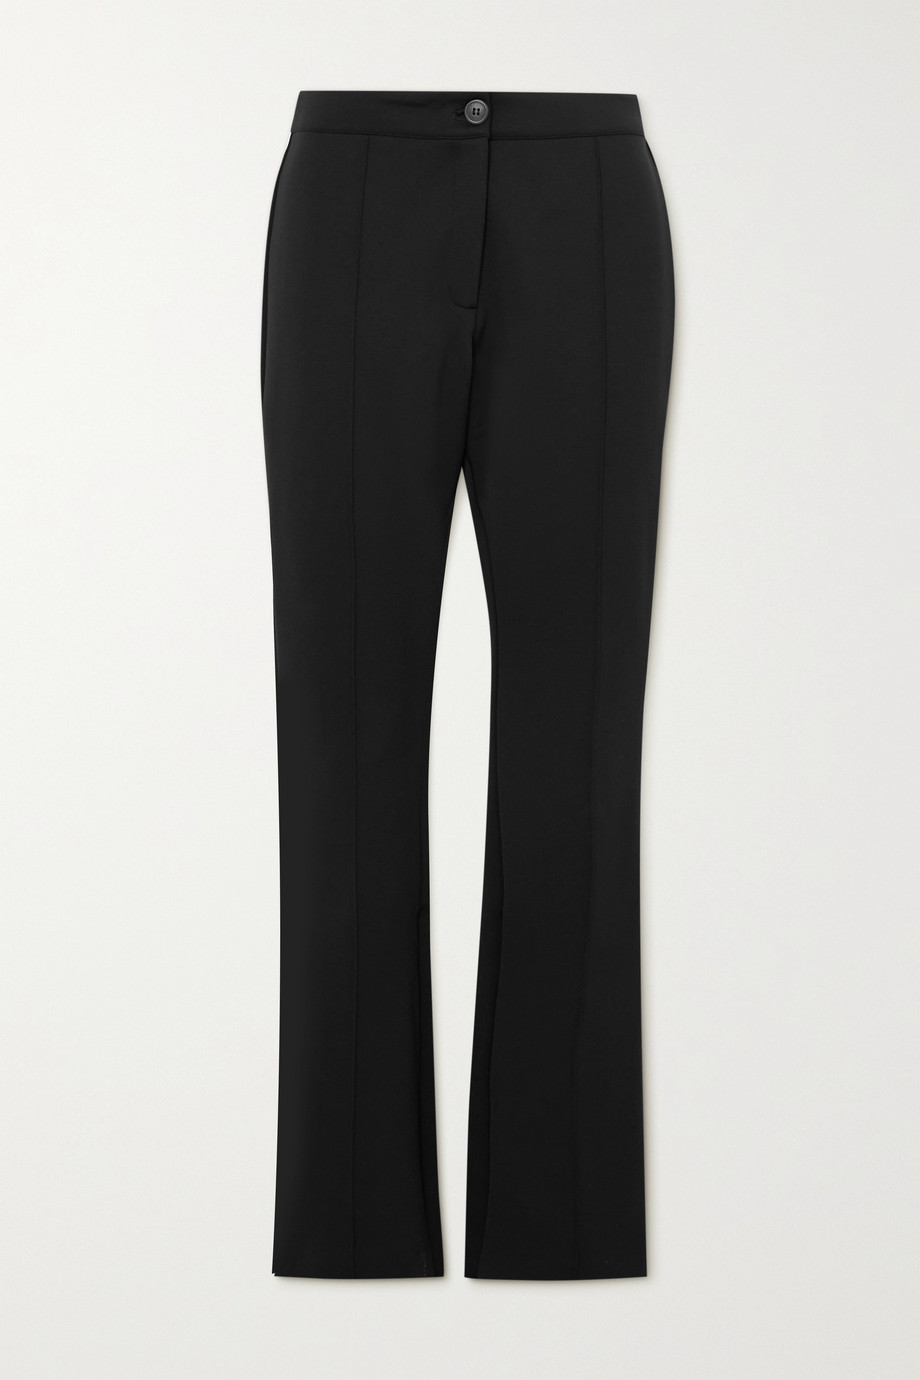 CAES + NET SUSTAIN stretch-scuba flared pants